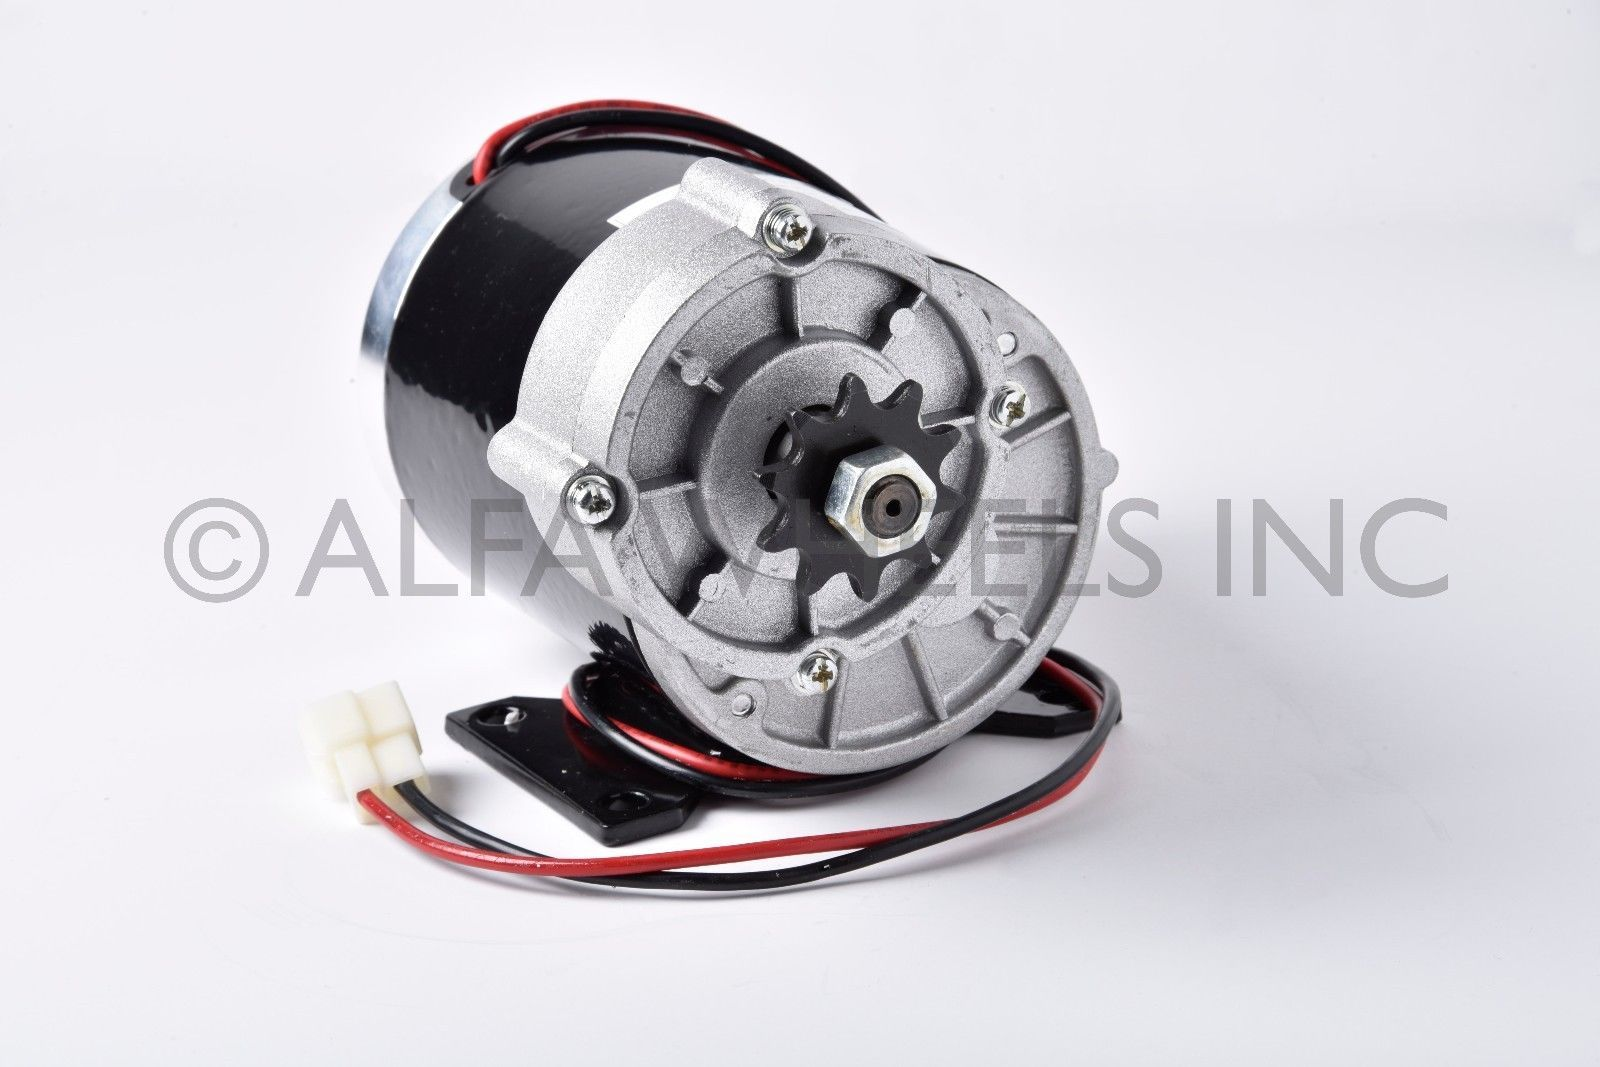 450 watt 36 volt electric motor f diy trike gokart scooter for Electric motor with gear reduction